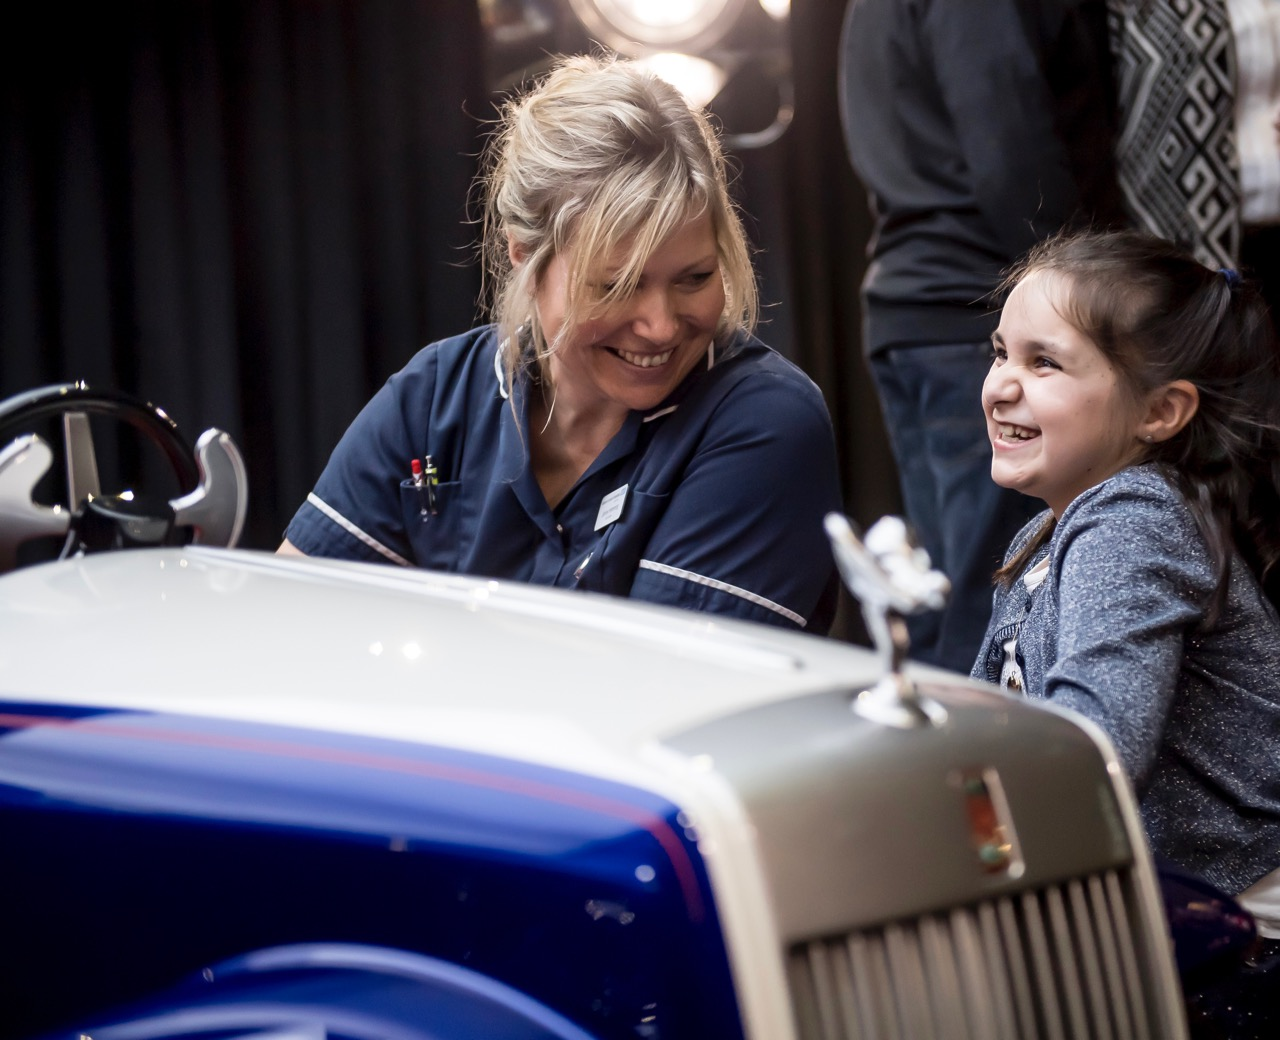 Rolls-Royce staffer introduces Molly Matthews to the SRH